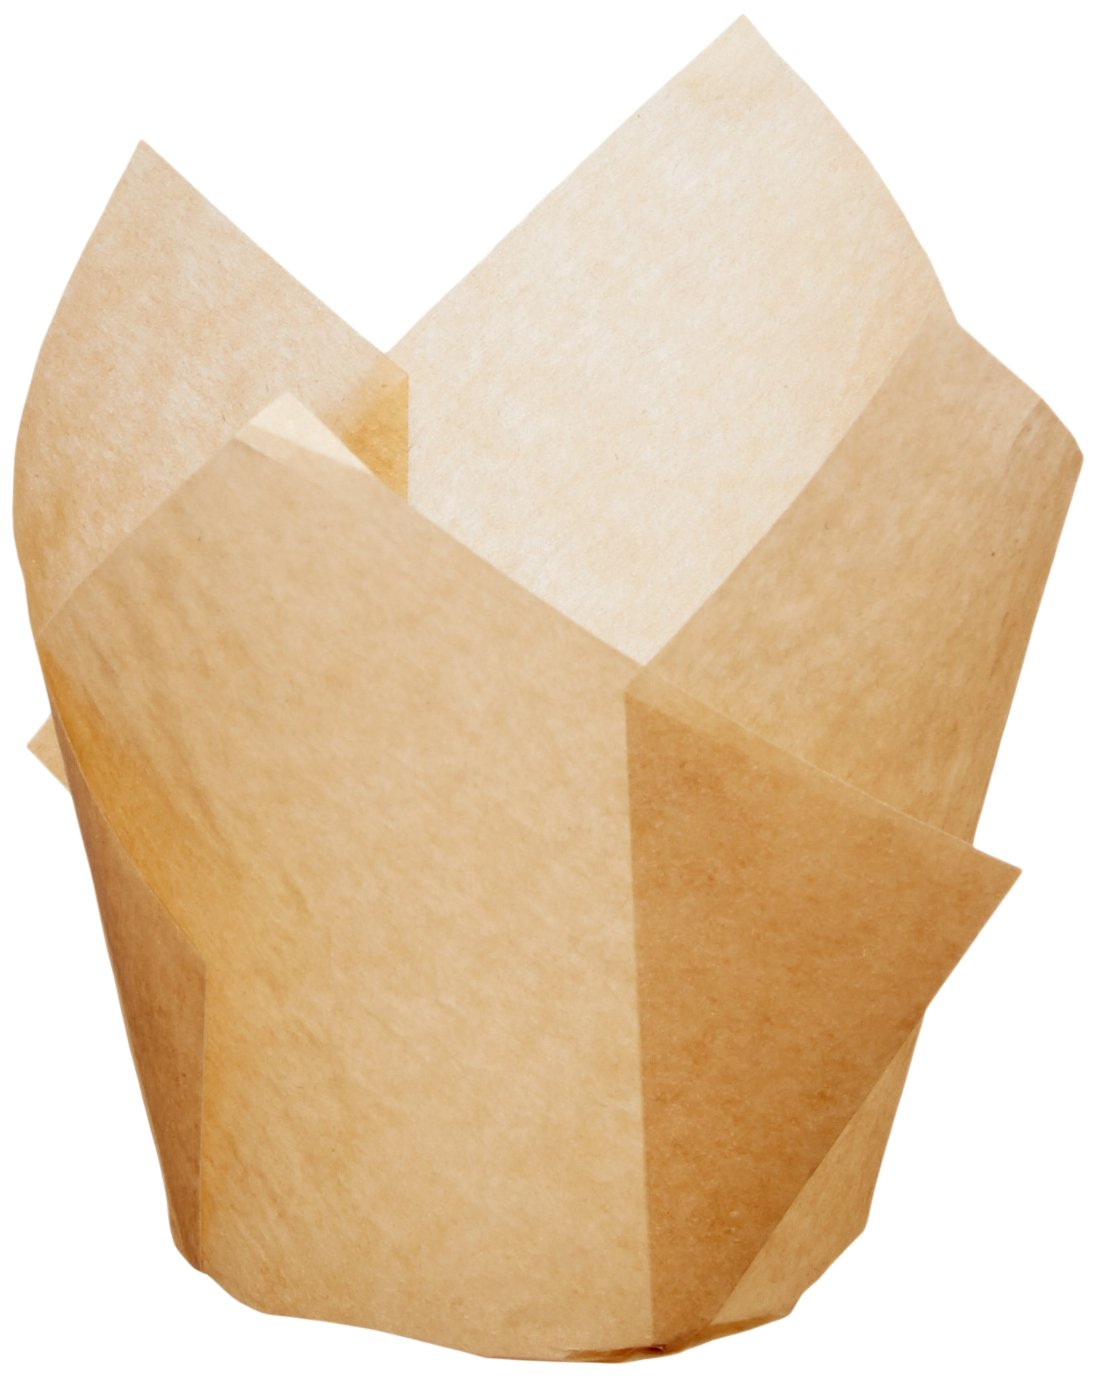 Hoffmaster 611121 Tulip Cup Cupcake Wrapper/Baking Cup, 2-1/4-Inch Diameter x 4-Inch Height, Large, Natural (4 Packs of 250)